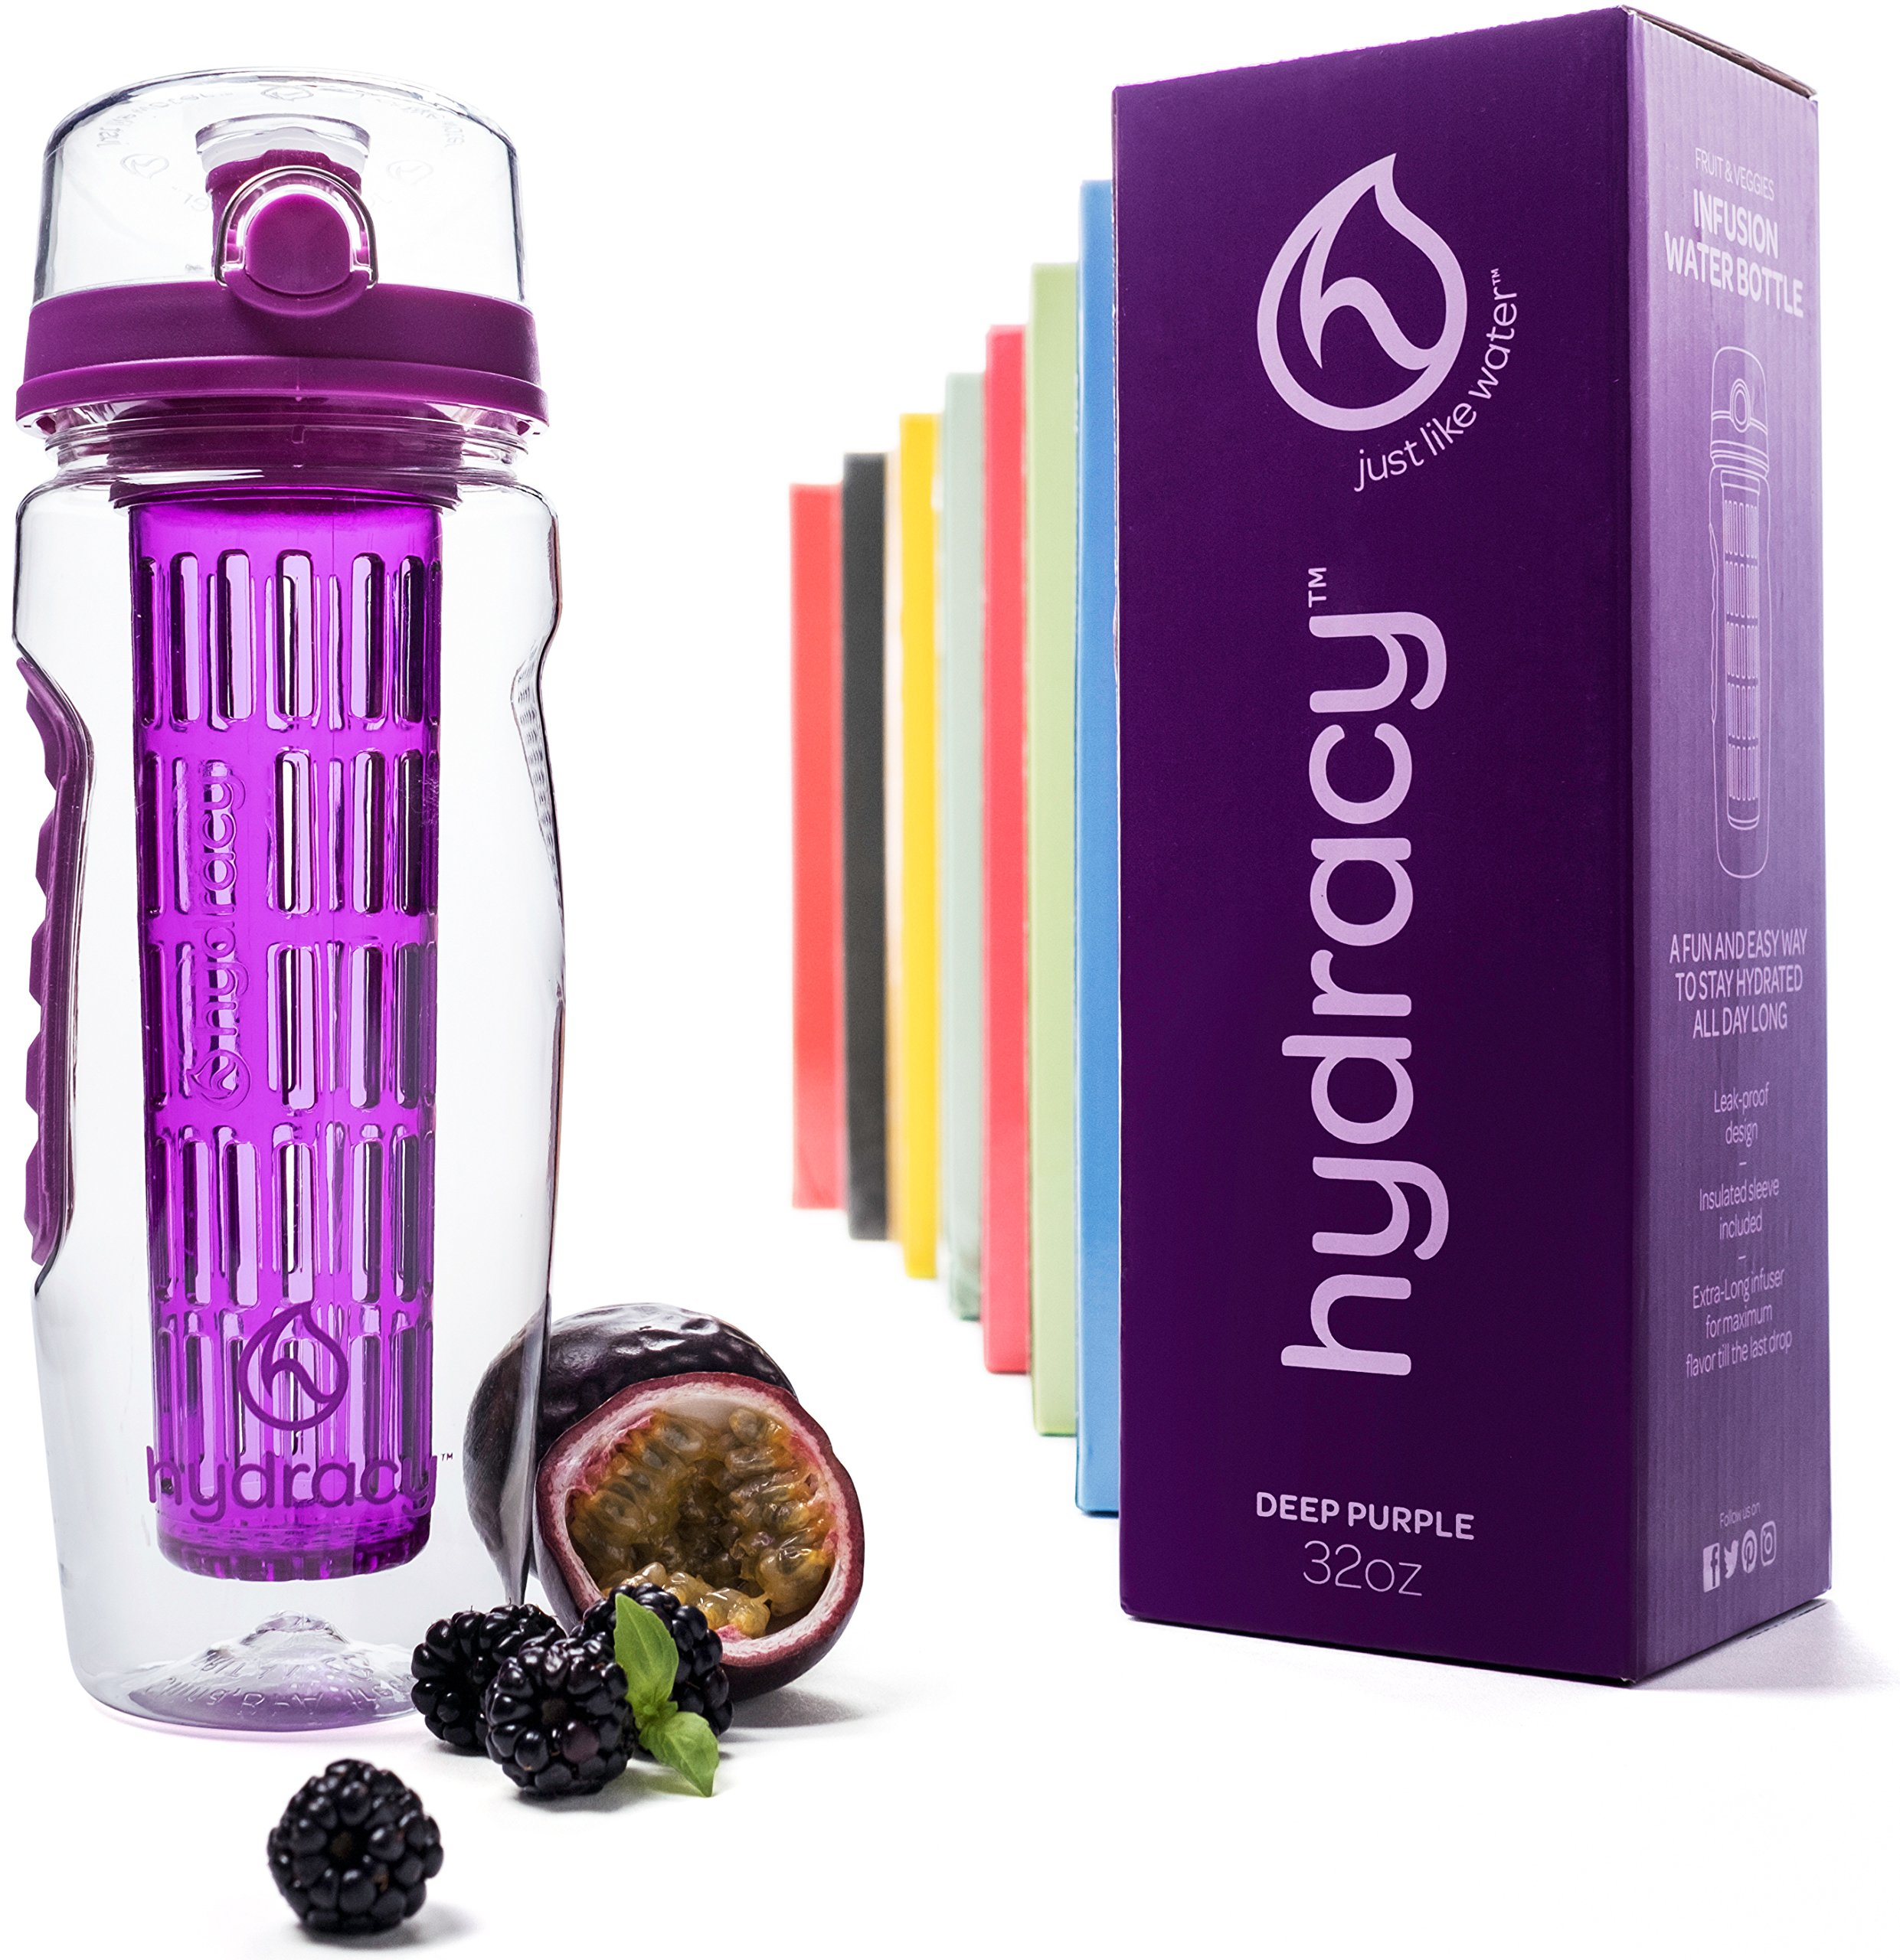 Hydracy Fruit Infuser Water Bottle - 32 Oz Sport Bottle with Full Length Infusion Rod and Insulating Sleeve Combo Set + 27 Fruit Infused Water Recipes eBook Gift - Deep Purple